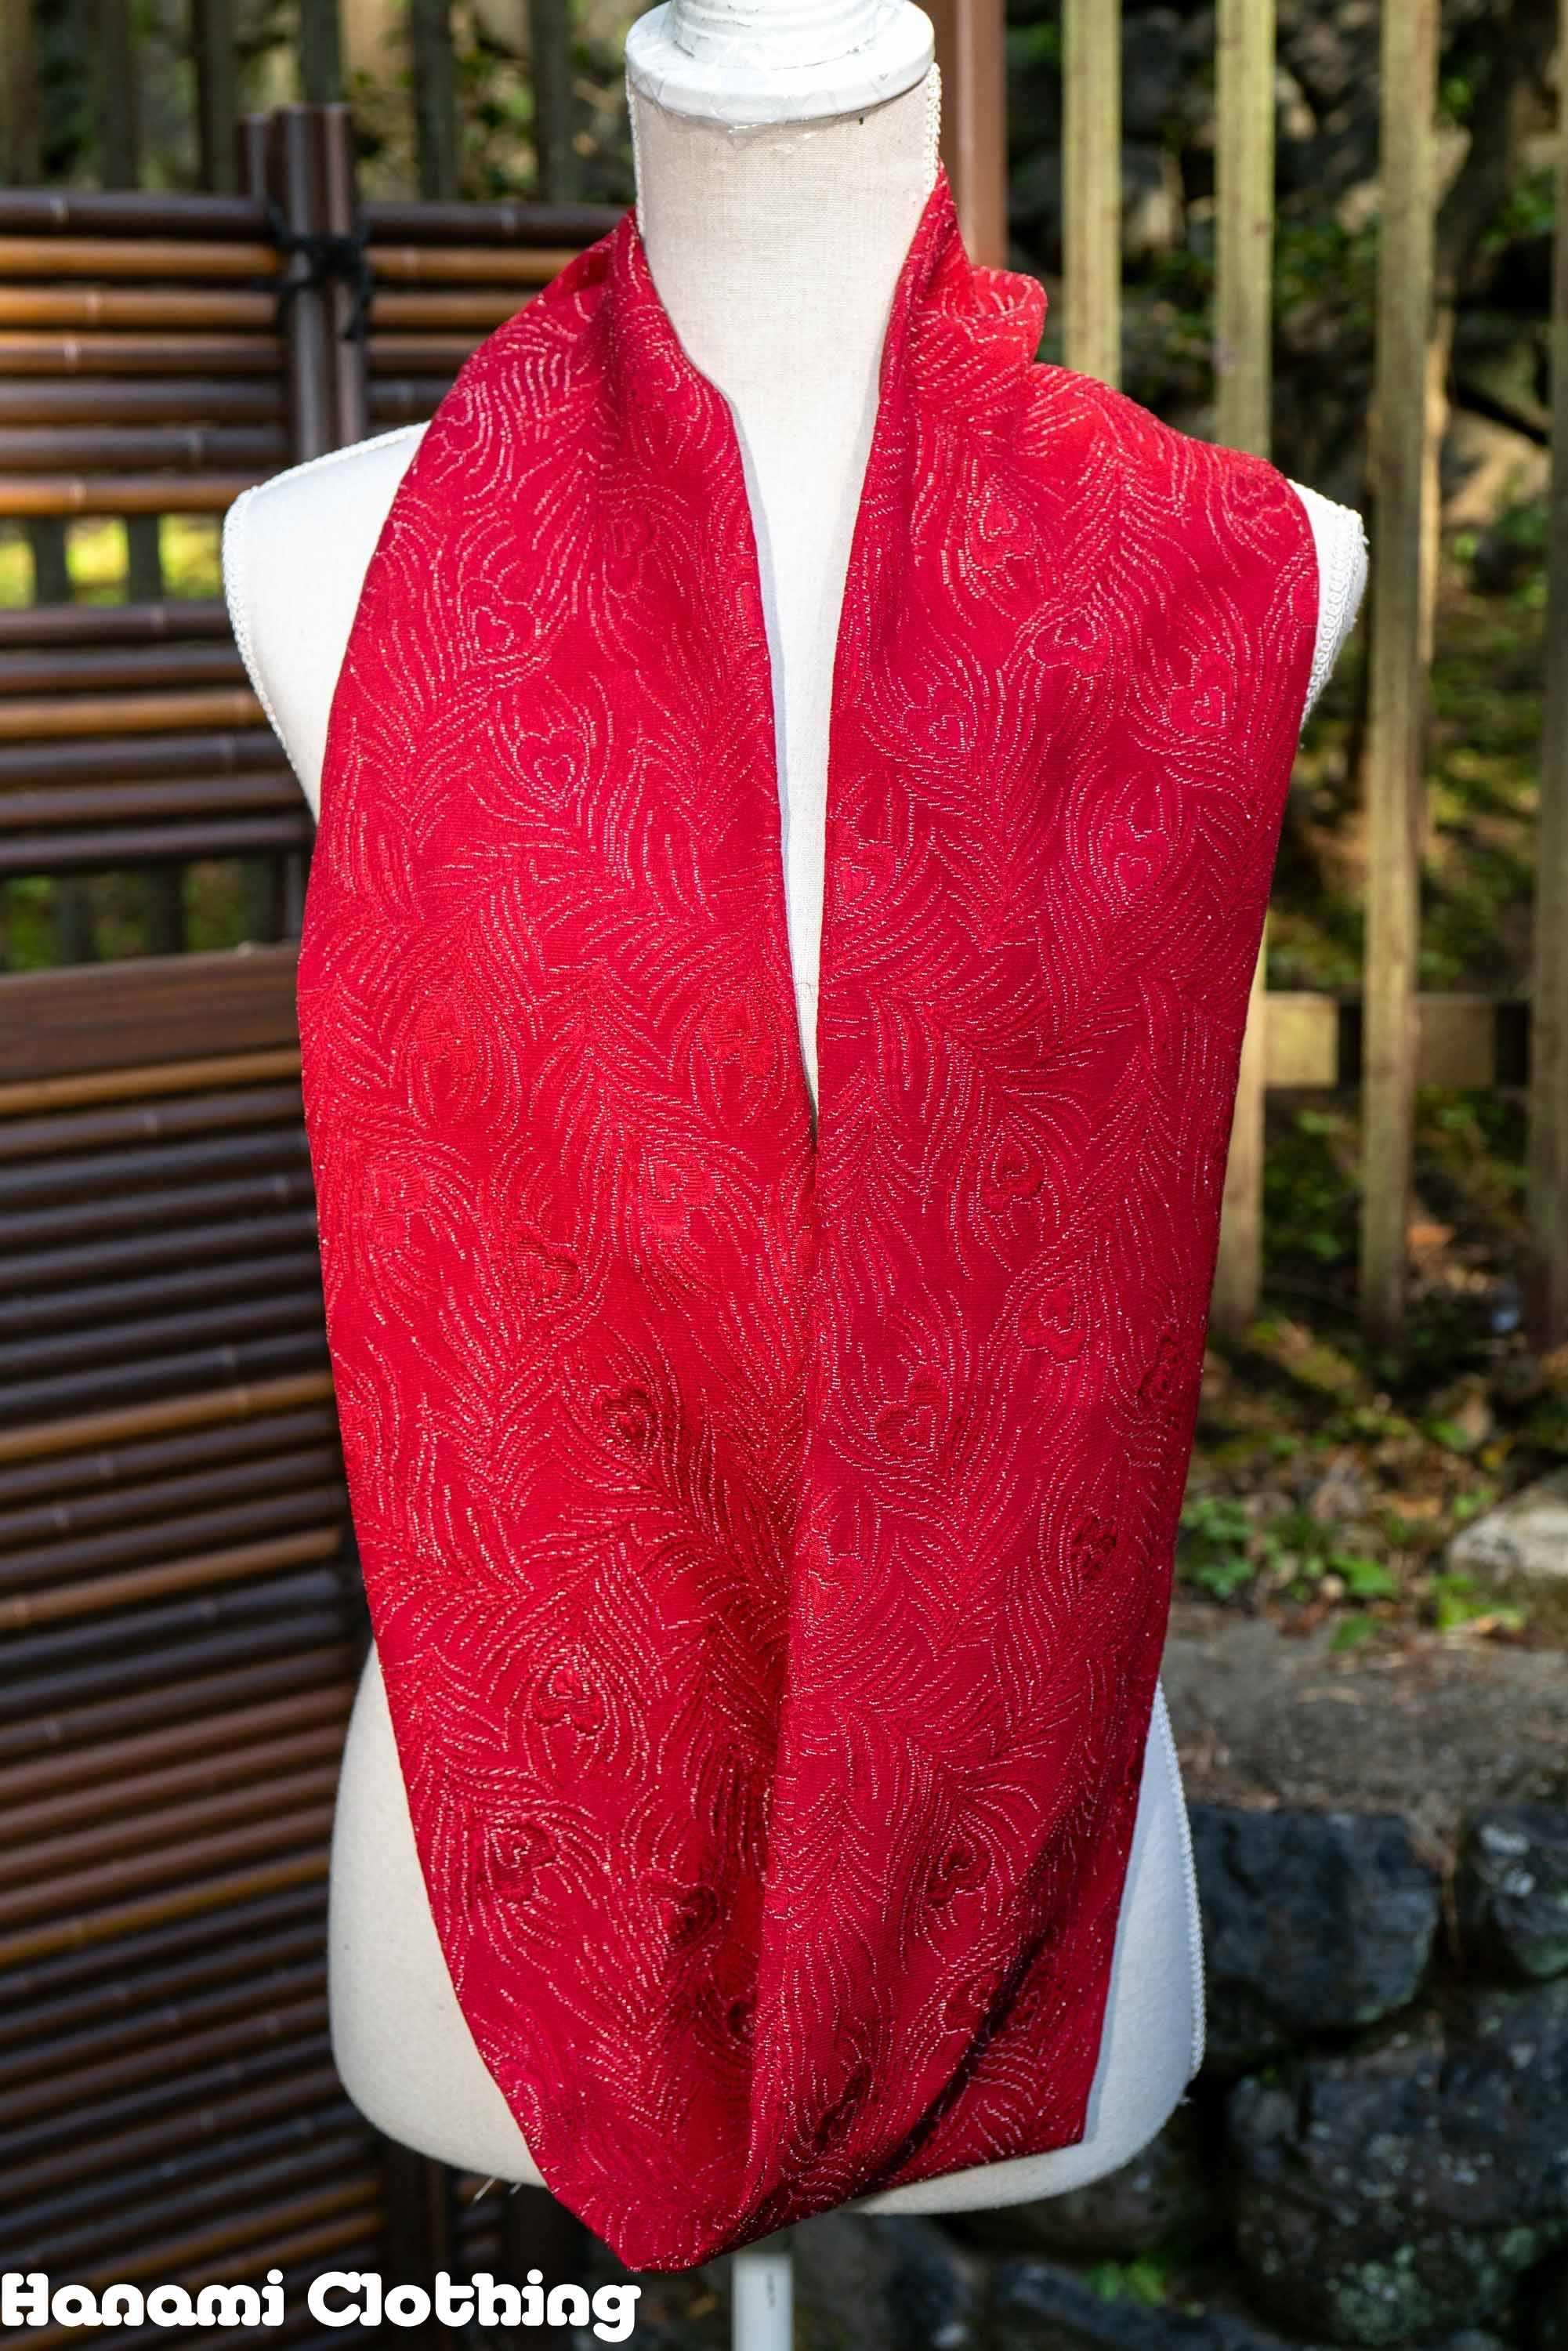 Peacock Feather Style Vintage Silk Kimono Infinity Scarf - Red with Shiny Silver Embroidery - Unique Handmade Upcycled Scarves